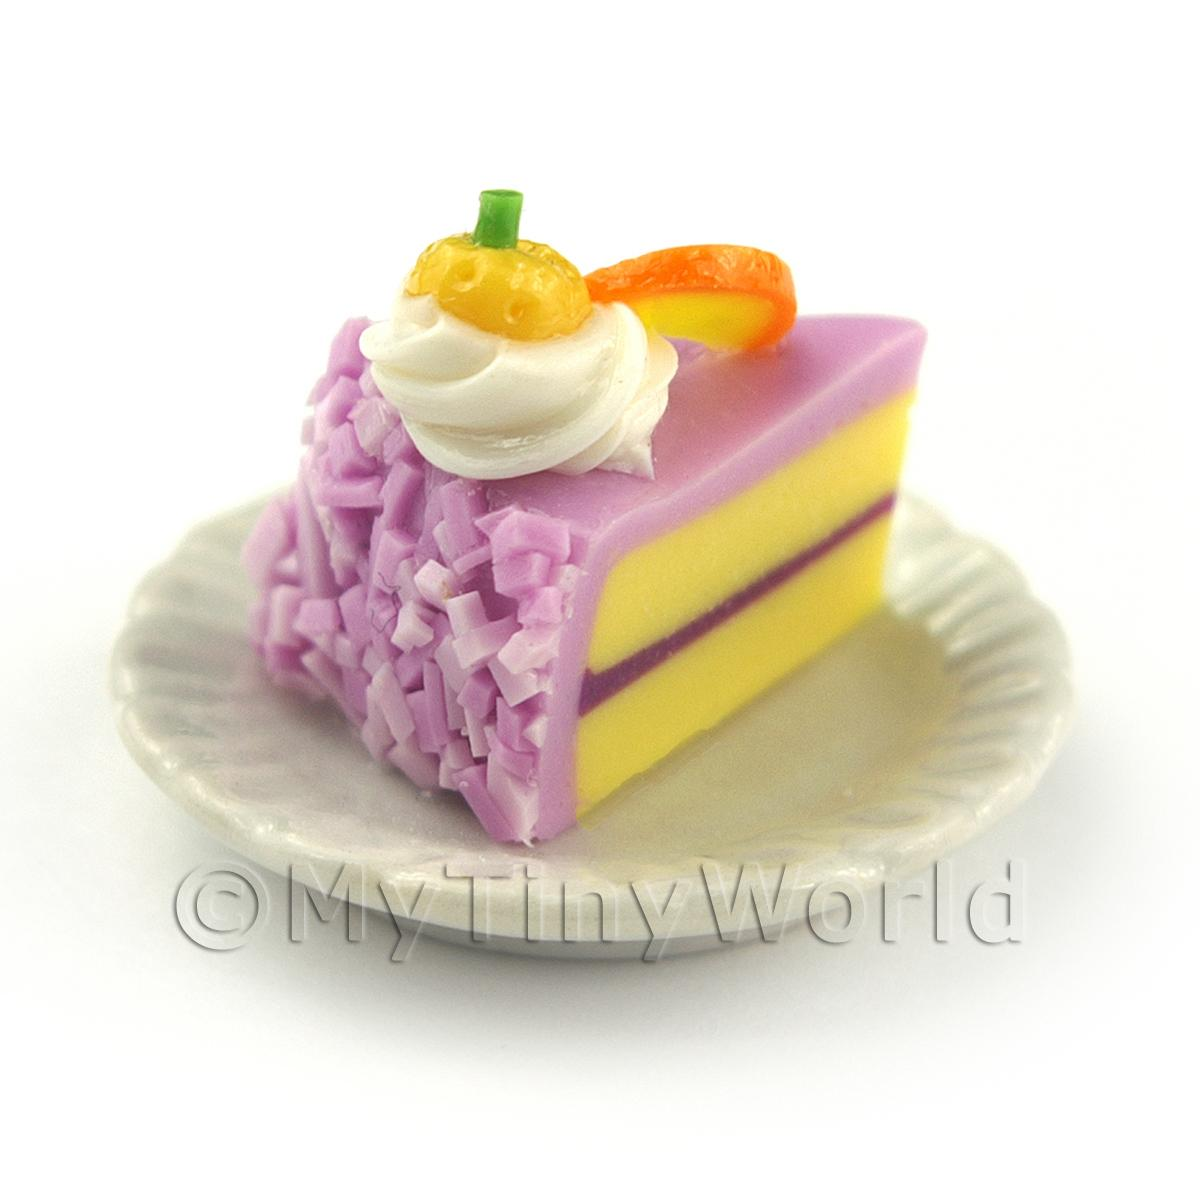 Miniature Purple Iced Individual Orange and Kumquat Cake Slice